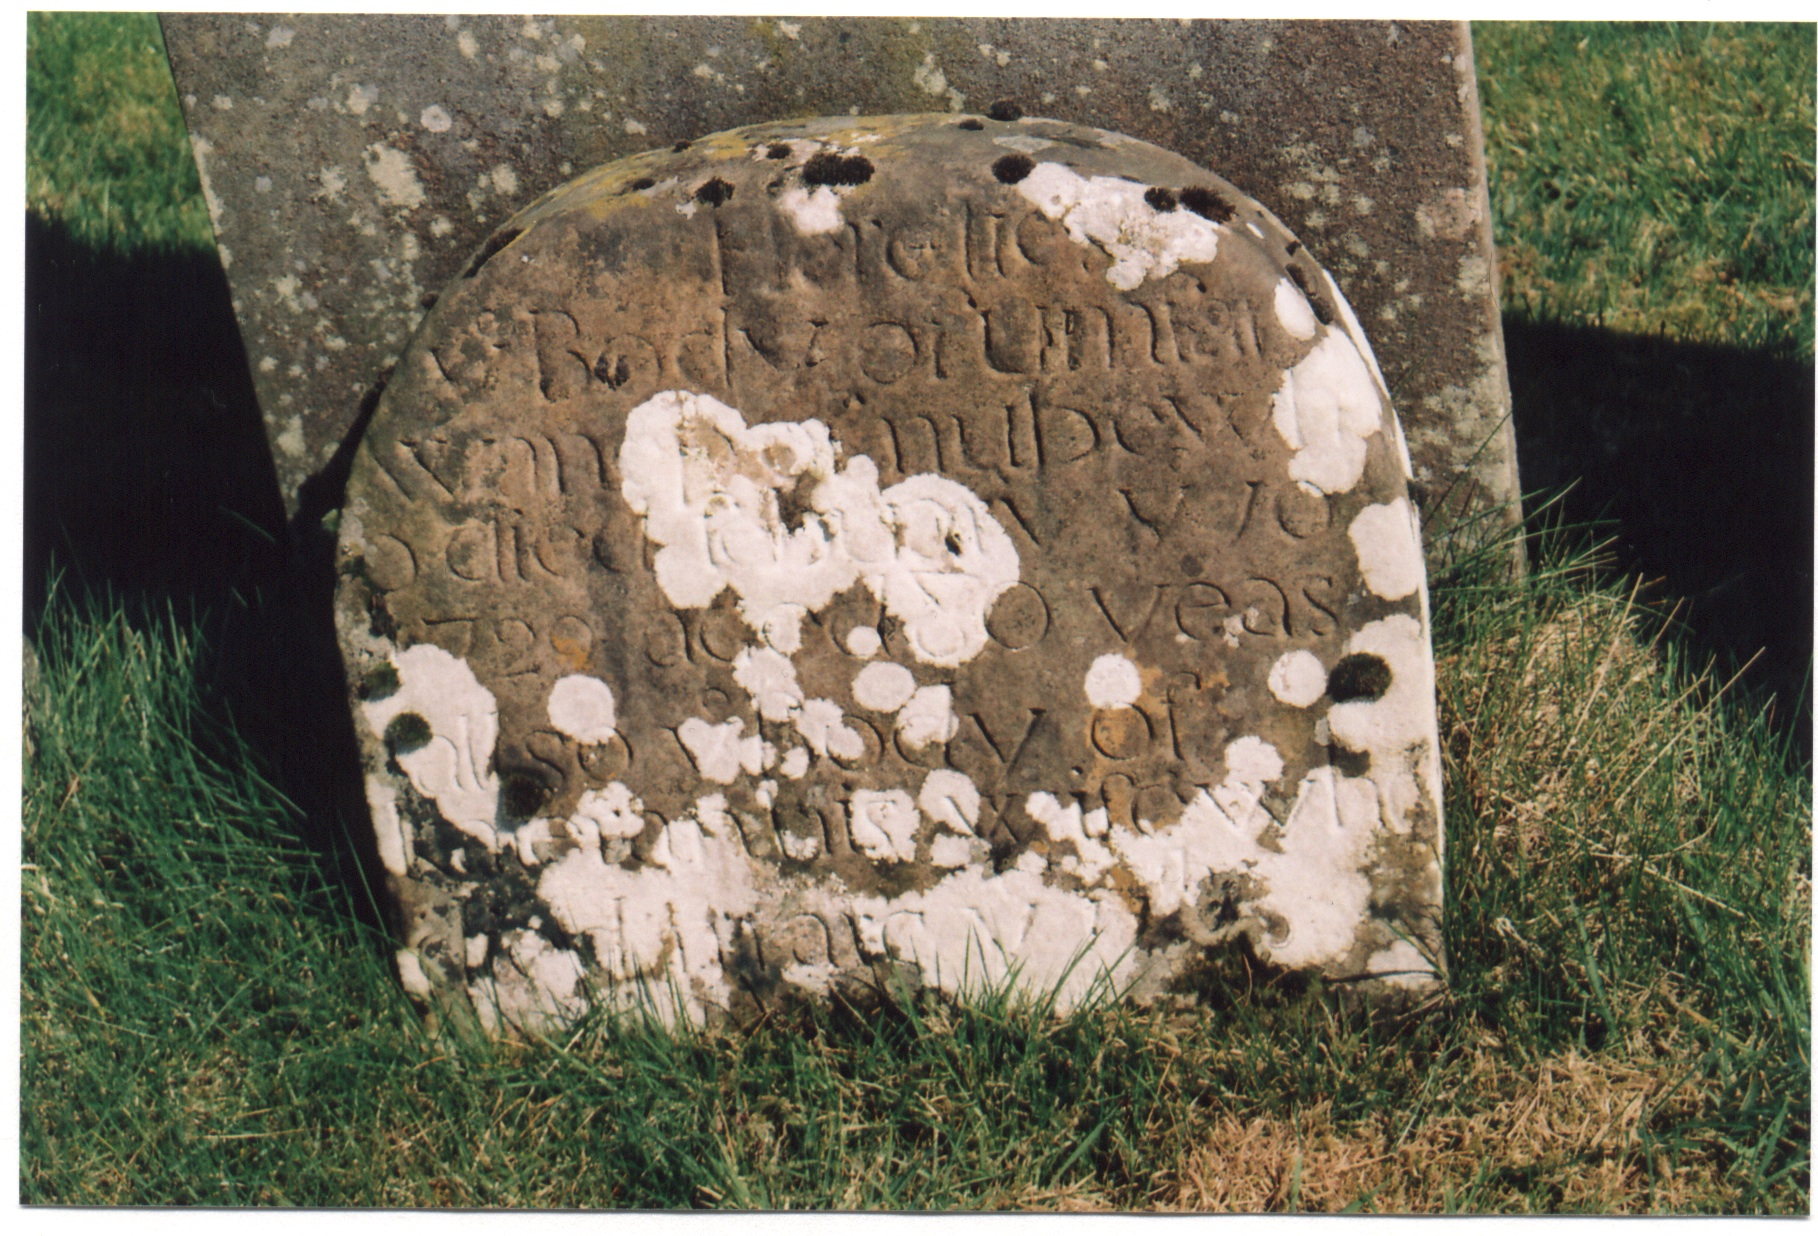 Gravestone of Humphrey Wannop, St. Kentigern's , Irthington